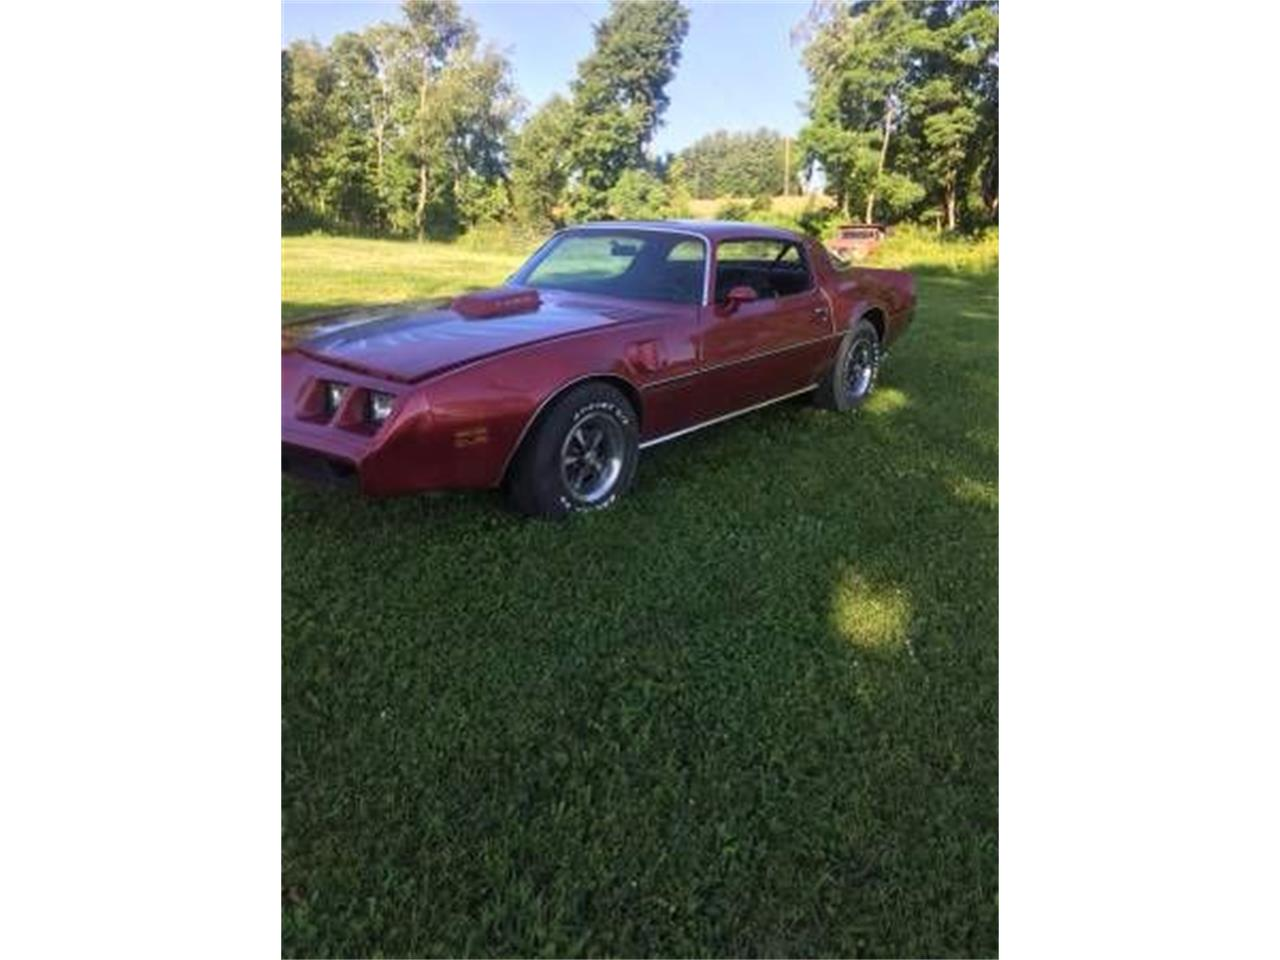 Large Picture of 1979 Pontiac Firebird Trans Am located in Cadillac Michigan - $10,395.00 Offered by Classic Car Deals - O159